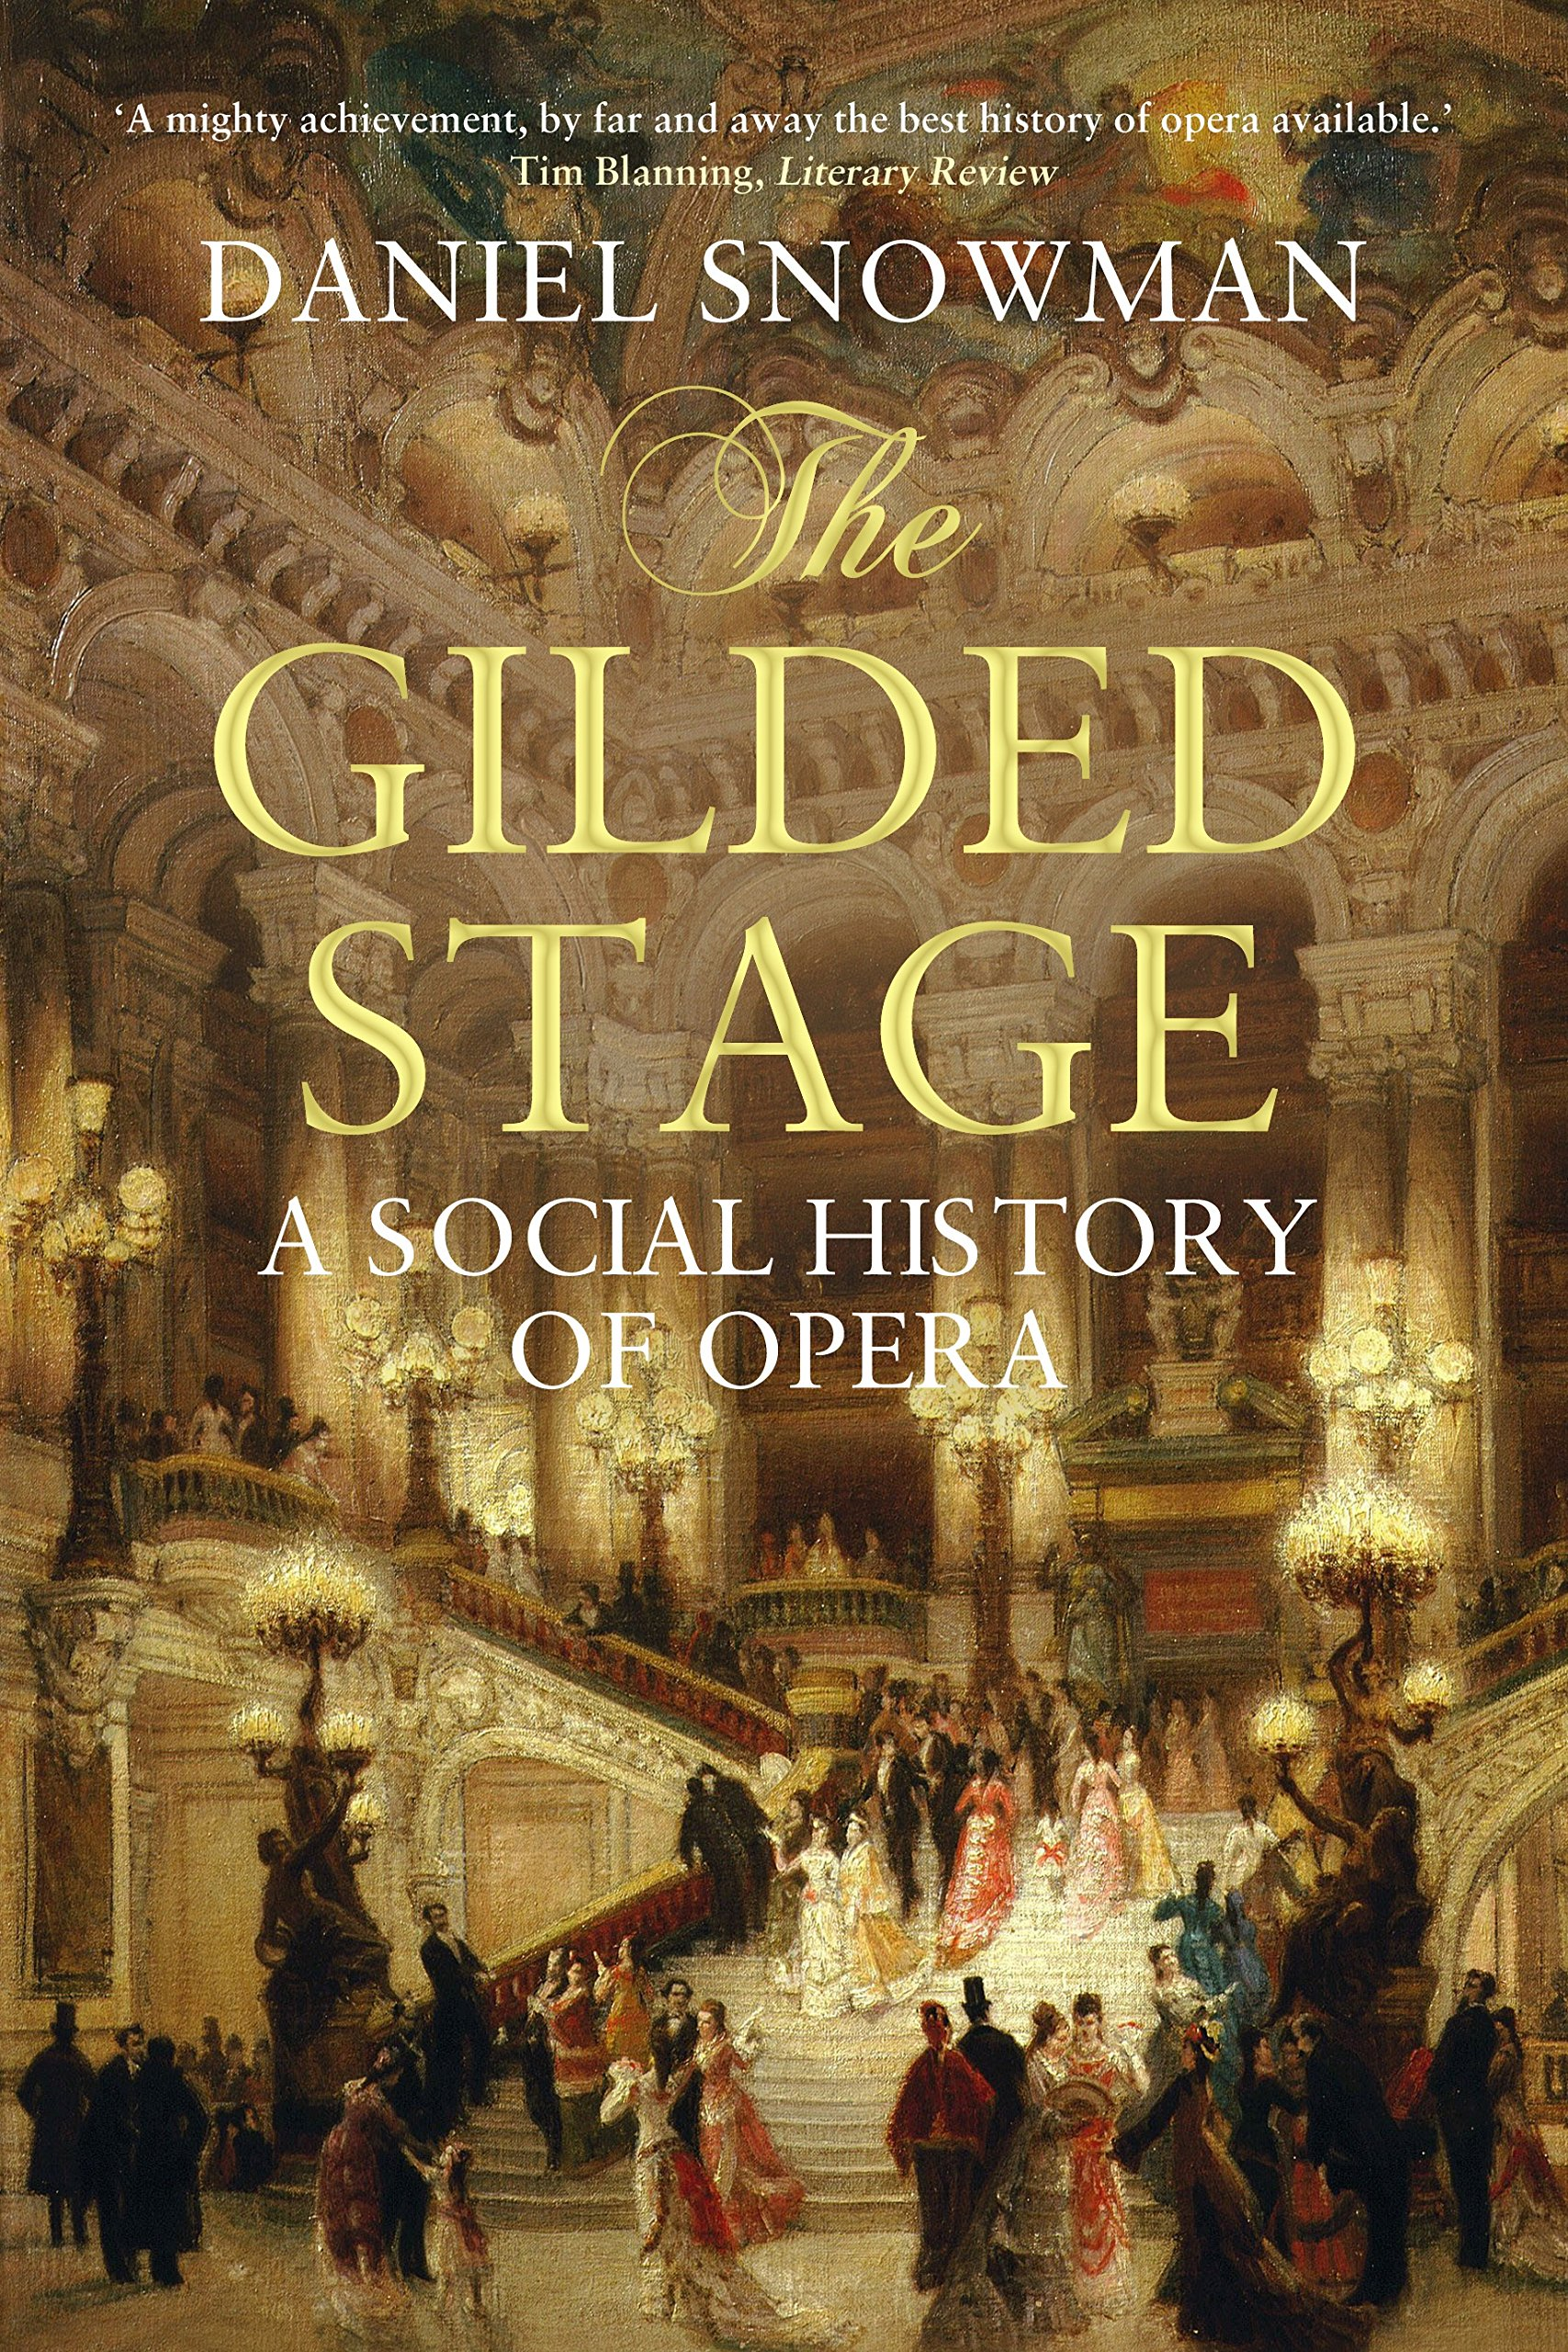 The Gilded Stage: A Social History of Opera: Snowman, Daniel: 9781843544678: Amazon.com: Books